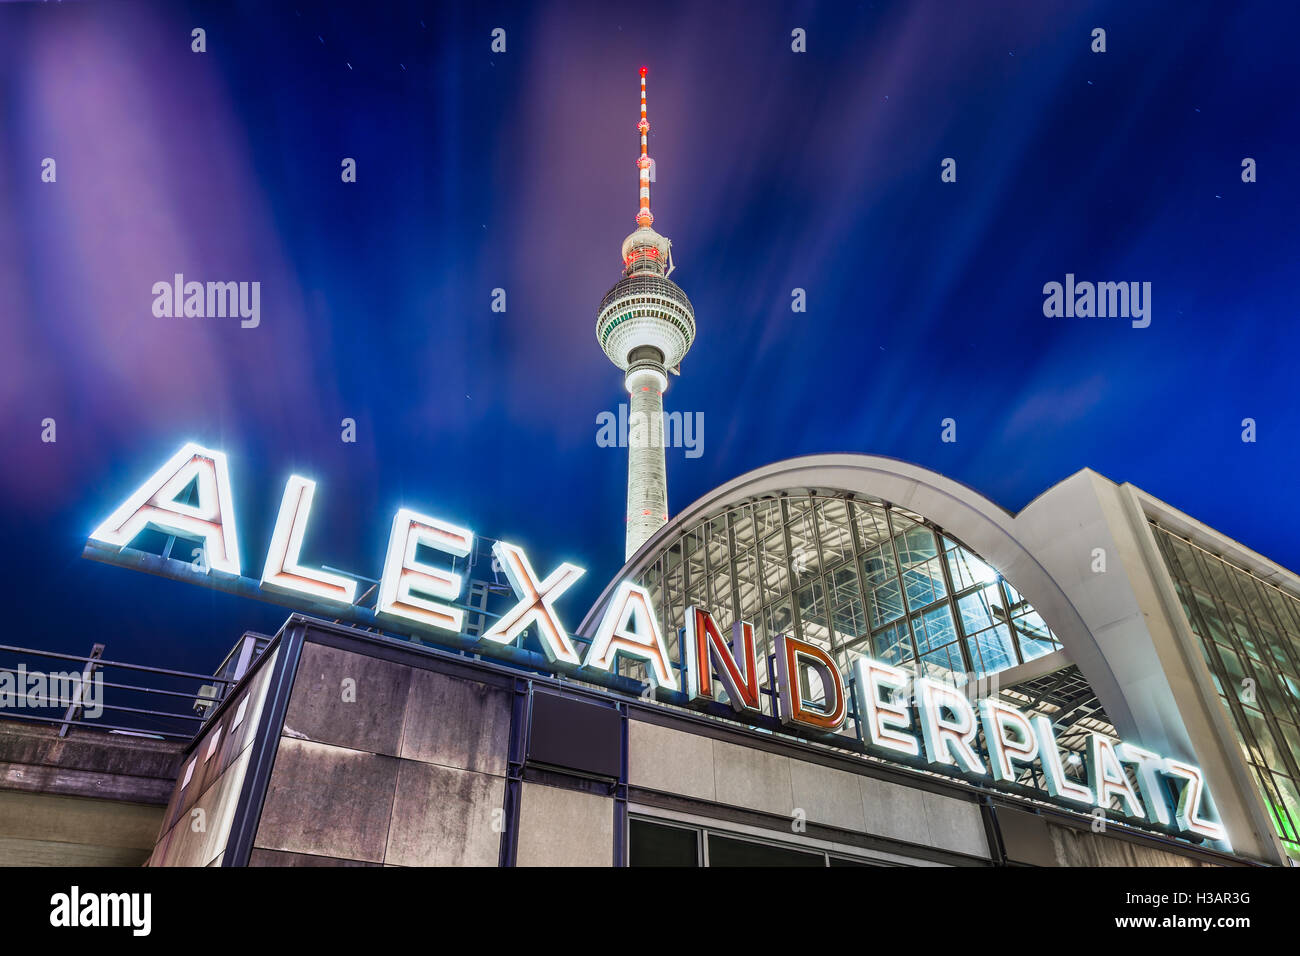 Classic wide-angle view of Alexanderplatz neon sign with famous TV tower and train station at night Berlin, Germany - Stock Image